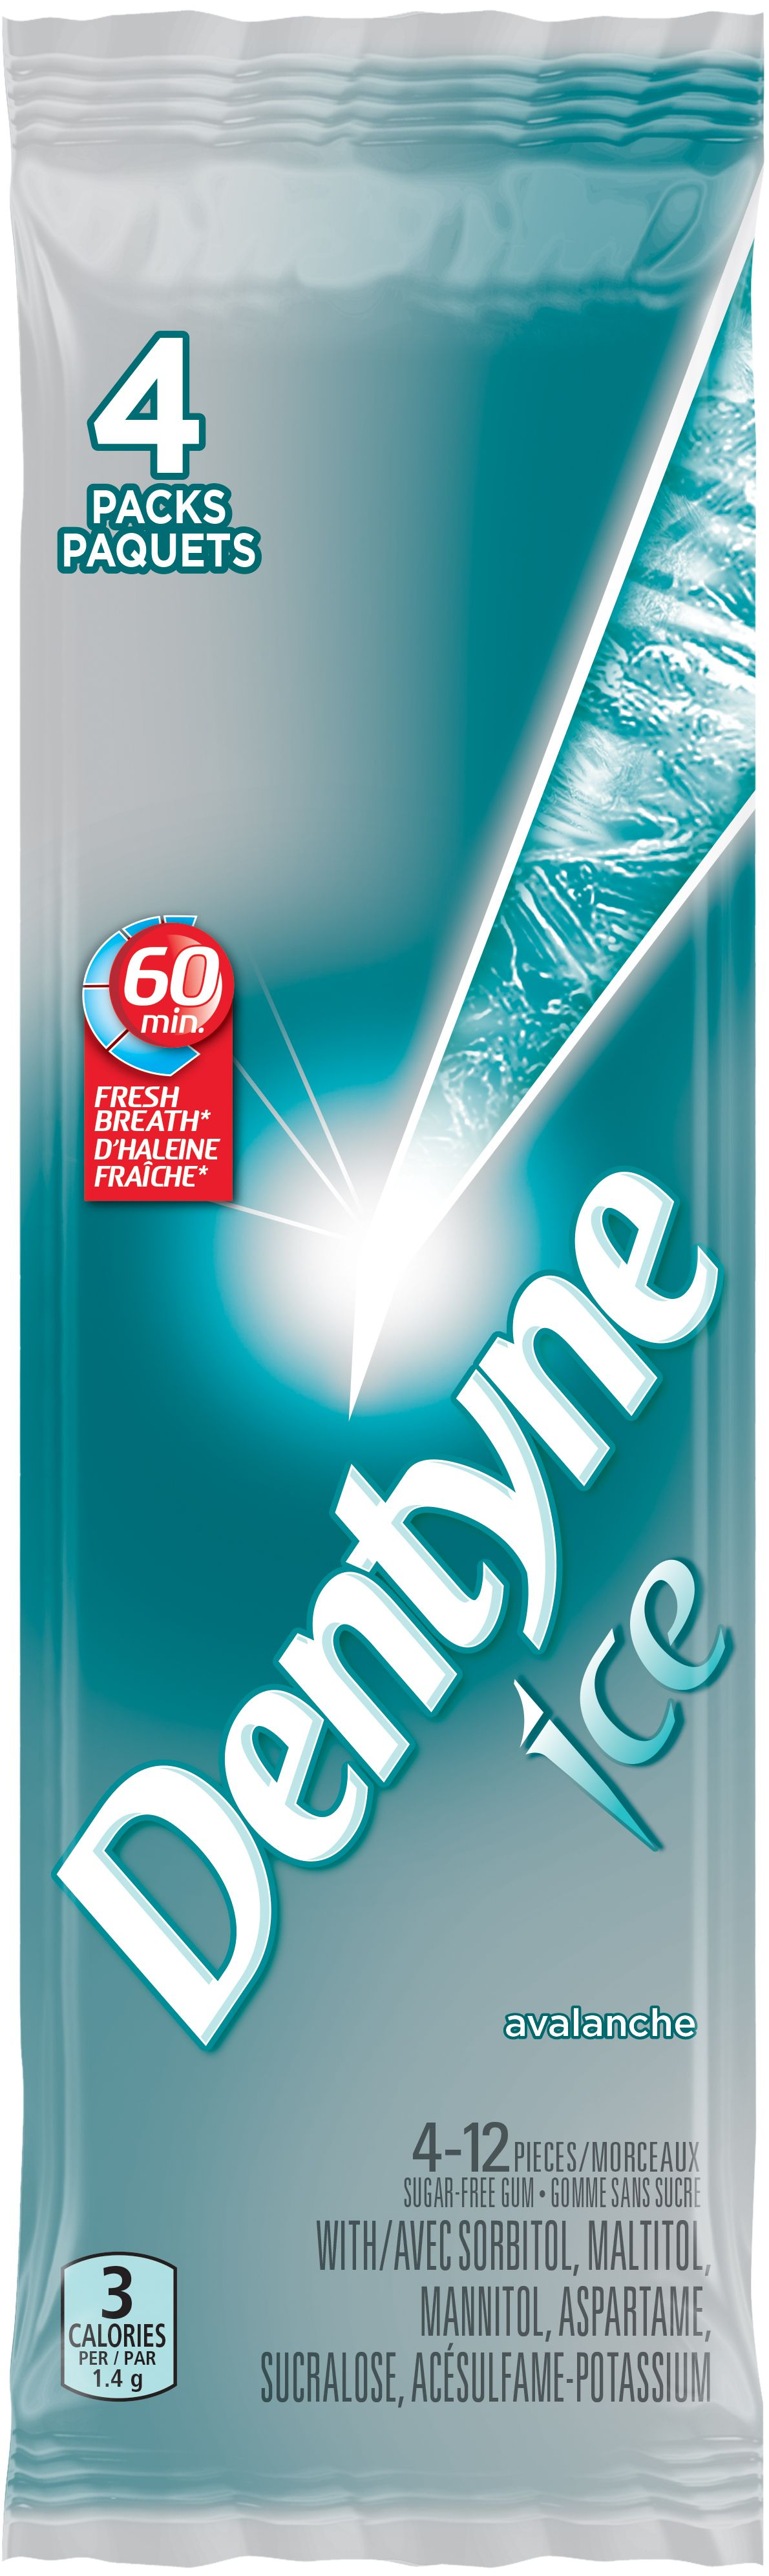 Dentyne Ice Avalanche Mint Gum 48 Count